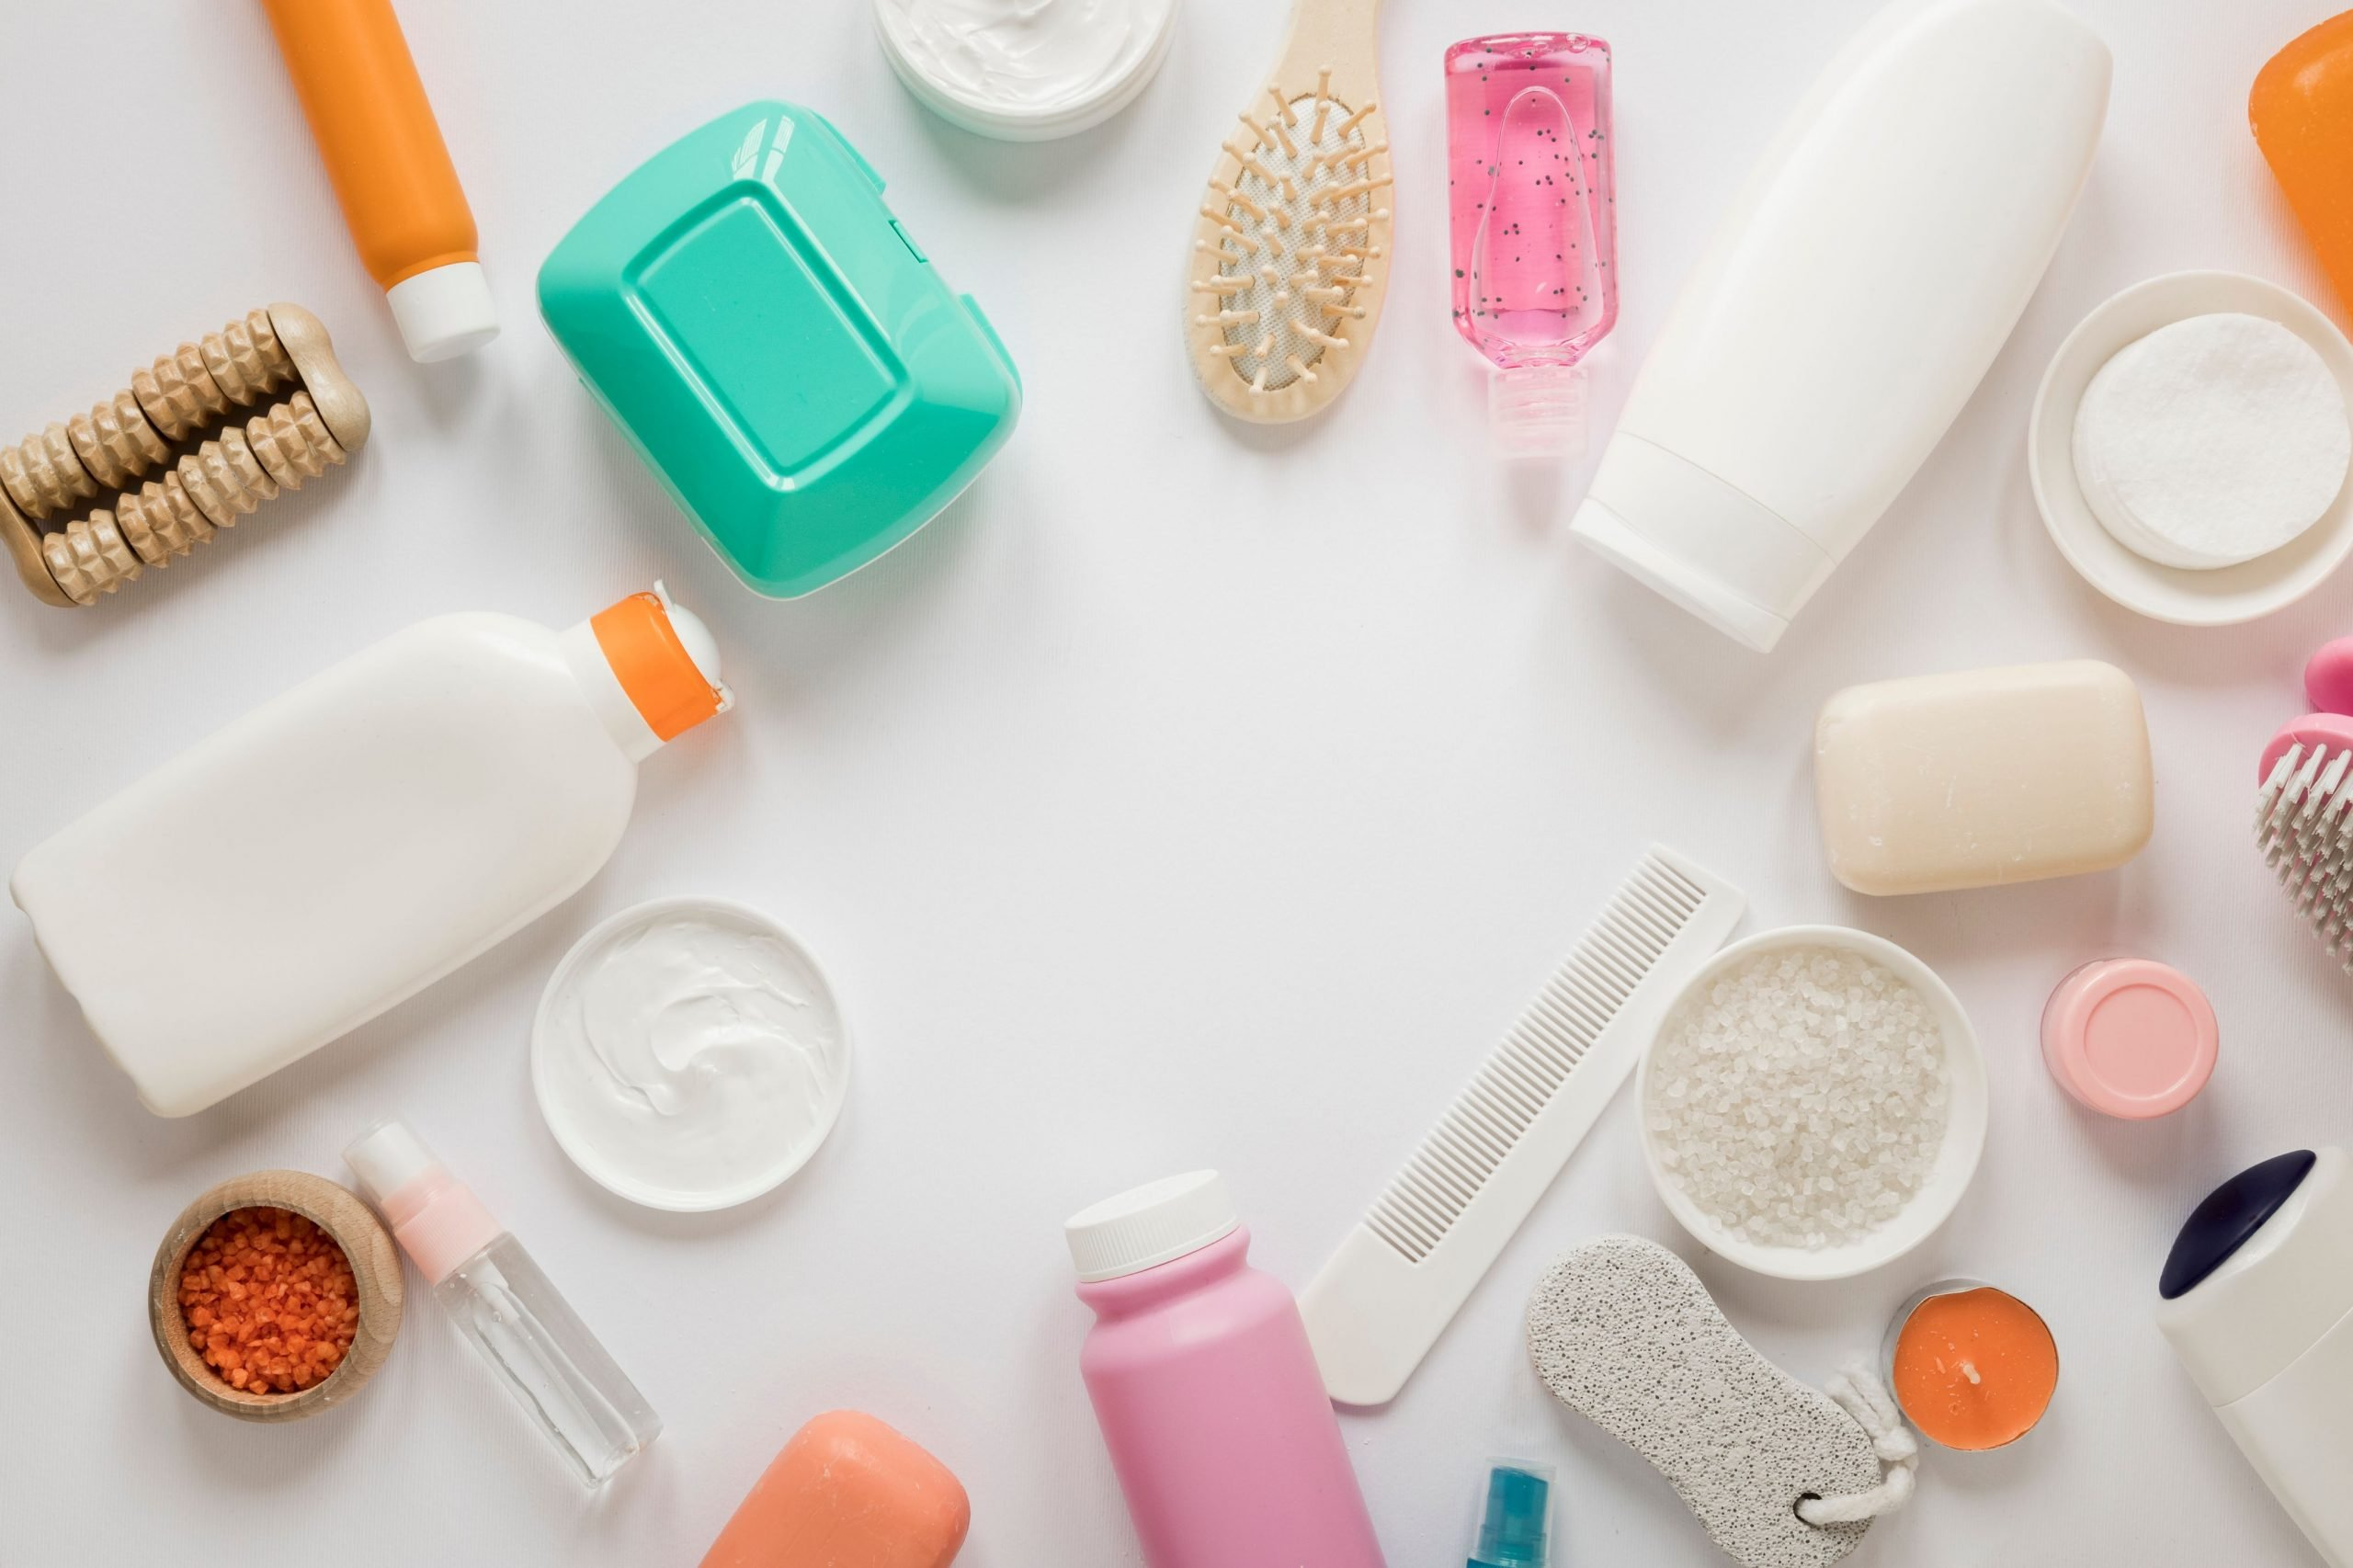 Top view of a variety of bath products to demonstrate things you put in a toiletry bag.